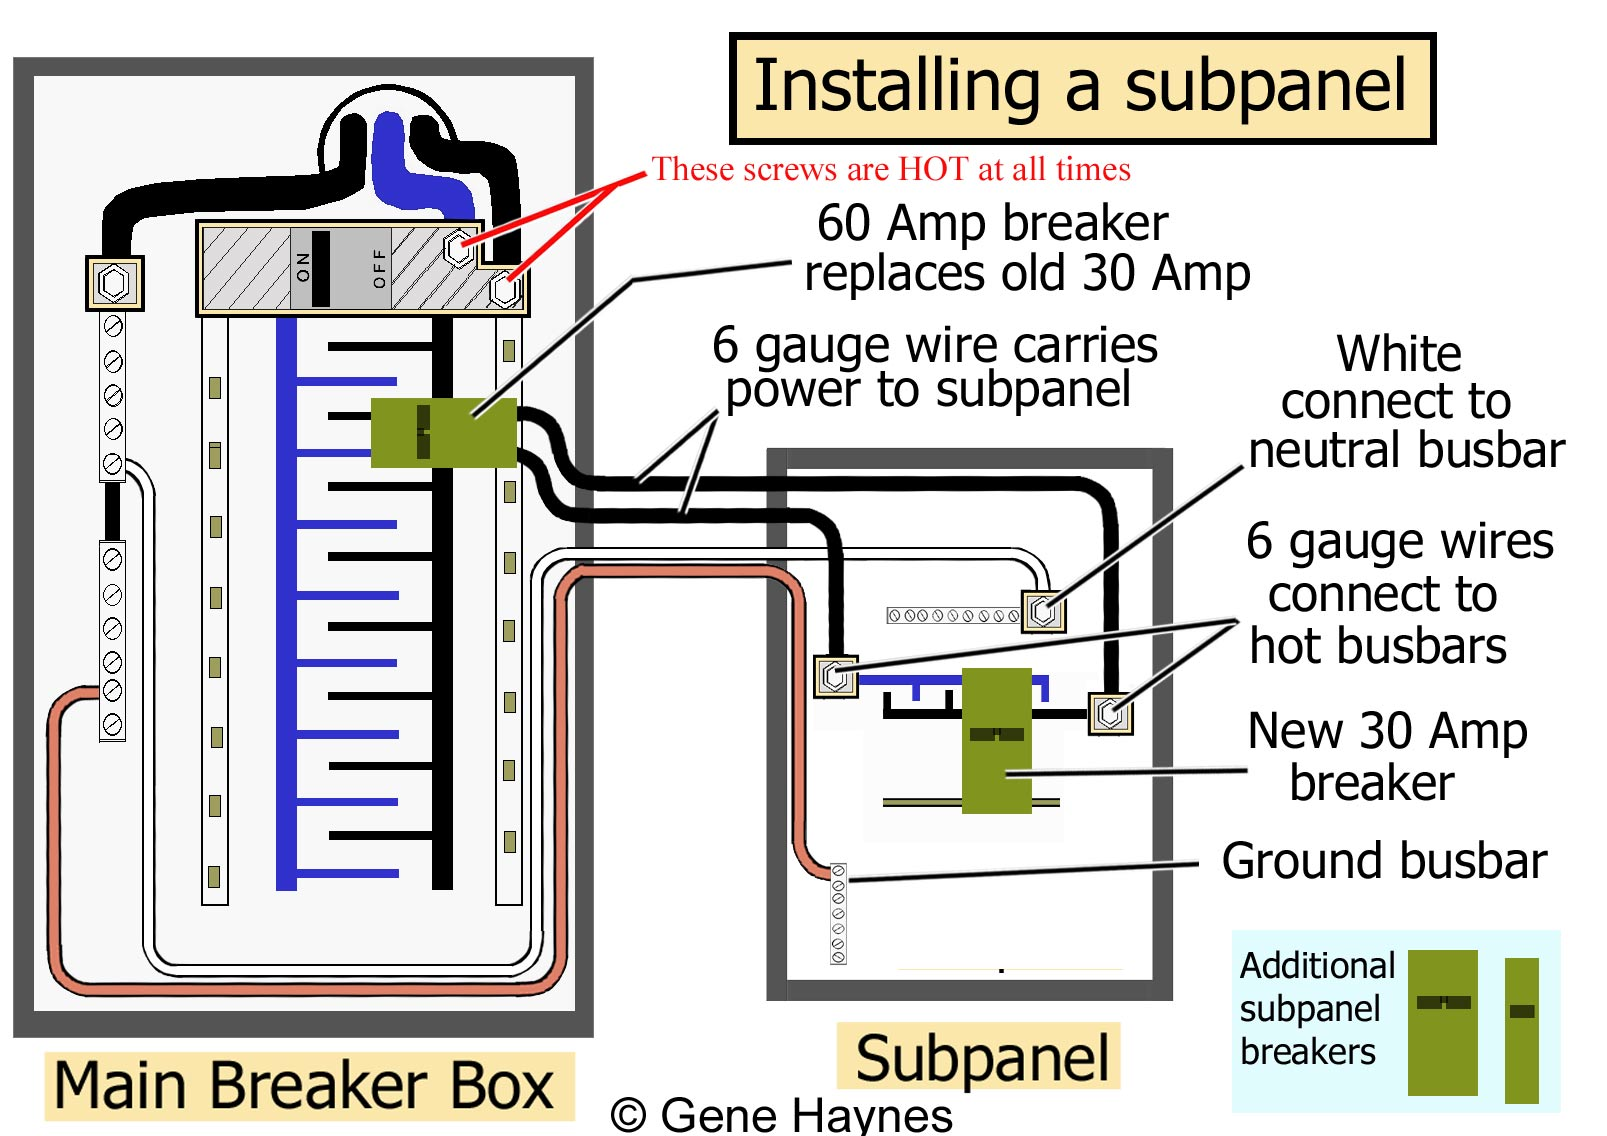 1) 60-150 Amp breaker replaces any 240 breaker in main box near top of box